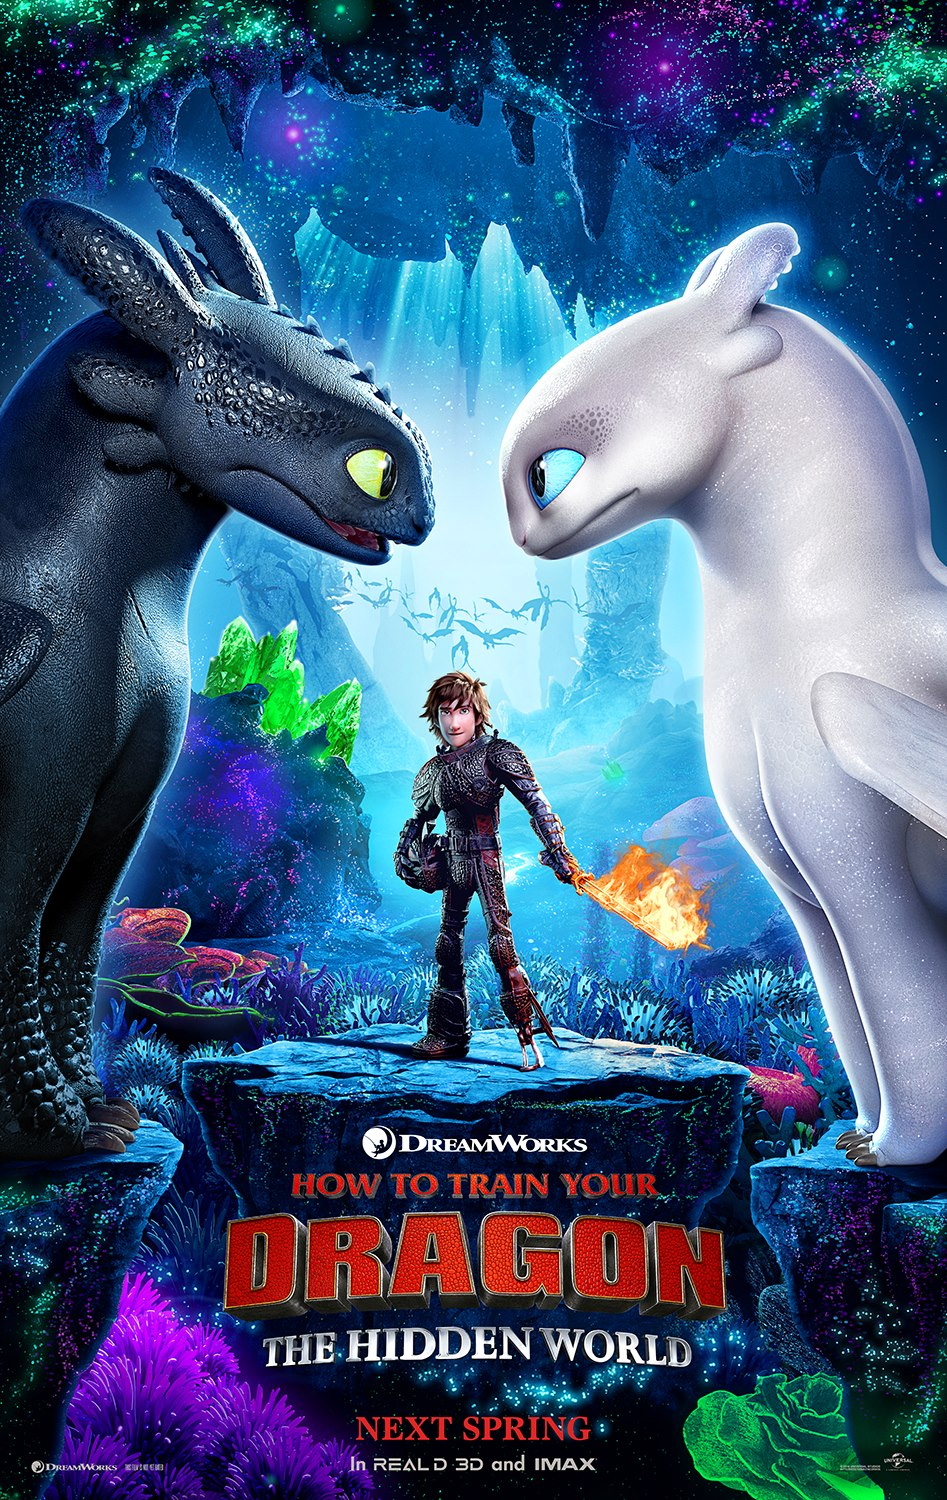 How to Train Your Dragon: The Hidden World Poster Has Dropped!